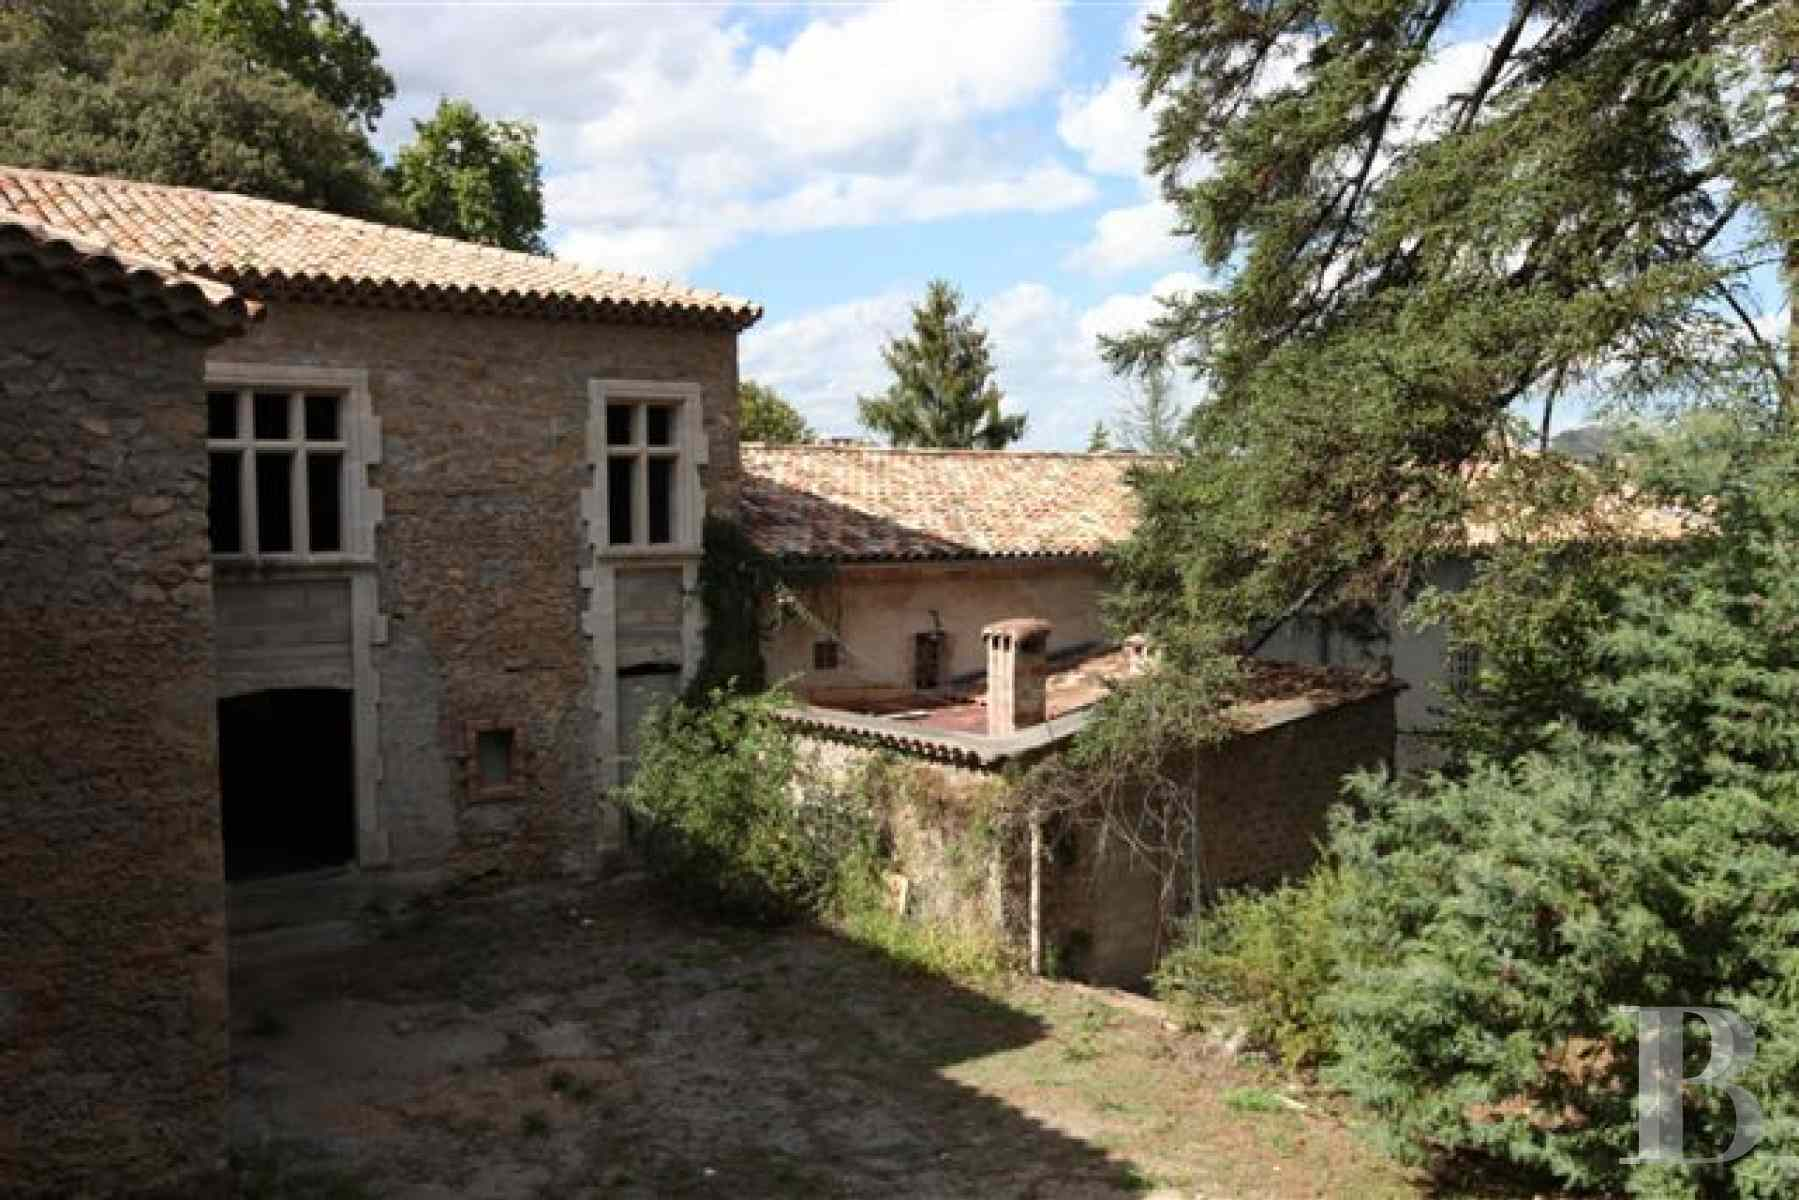 property for sale France languedoc roussillon property outbuildings - 3 zoom